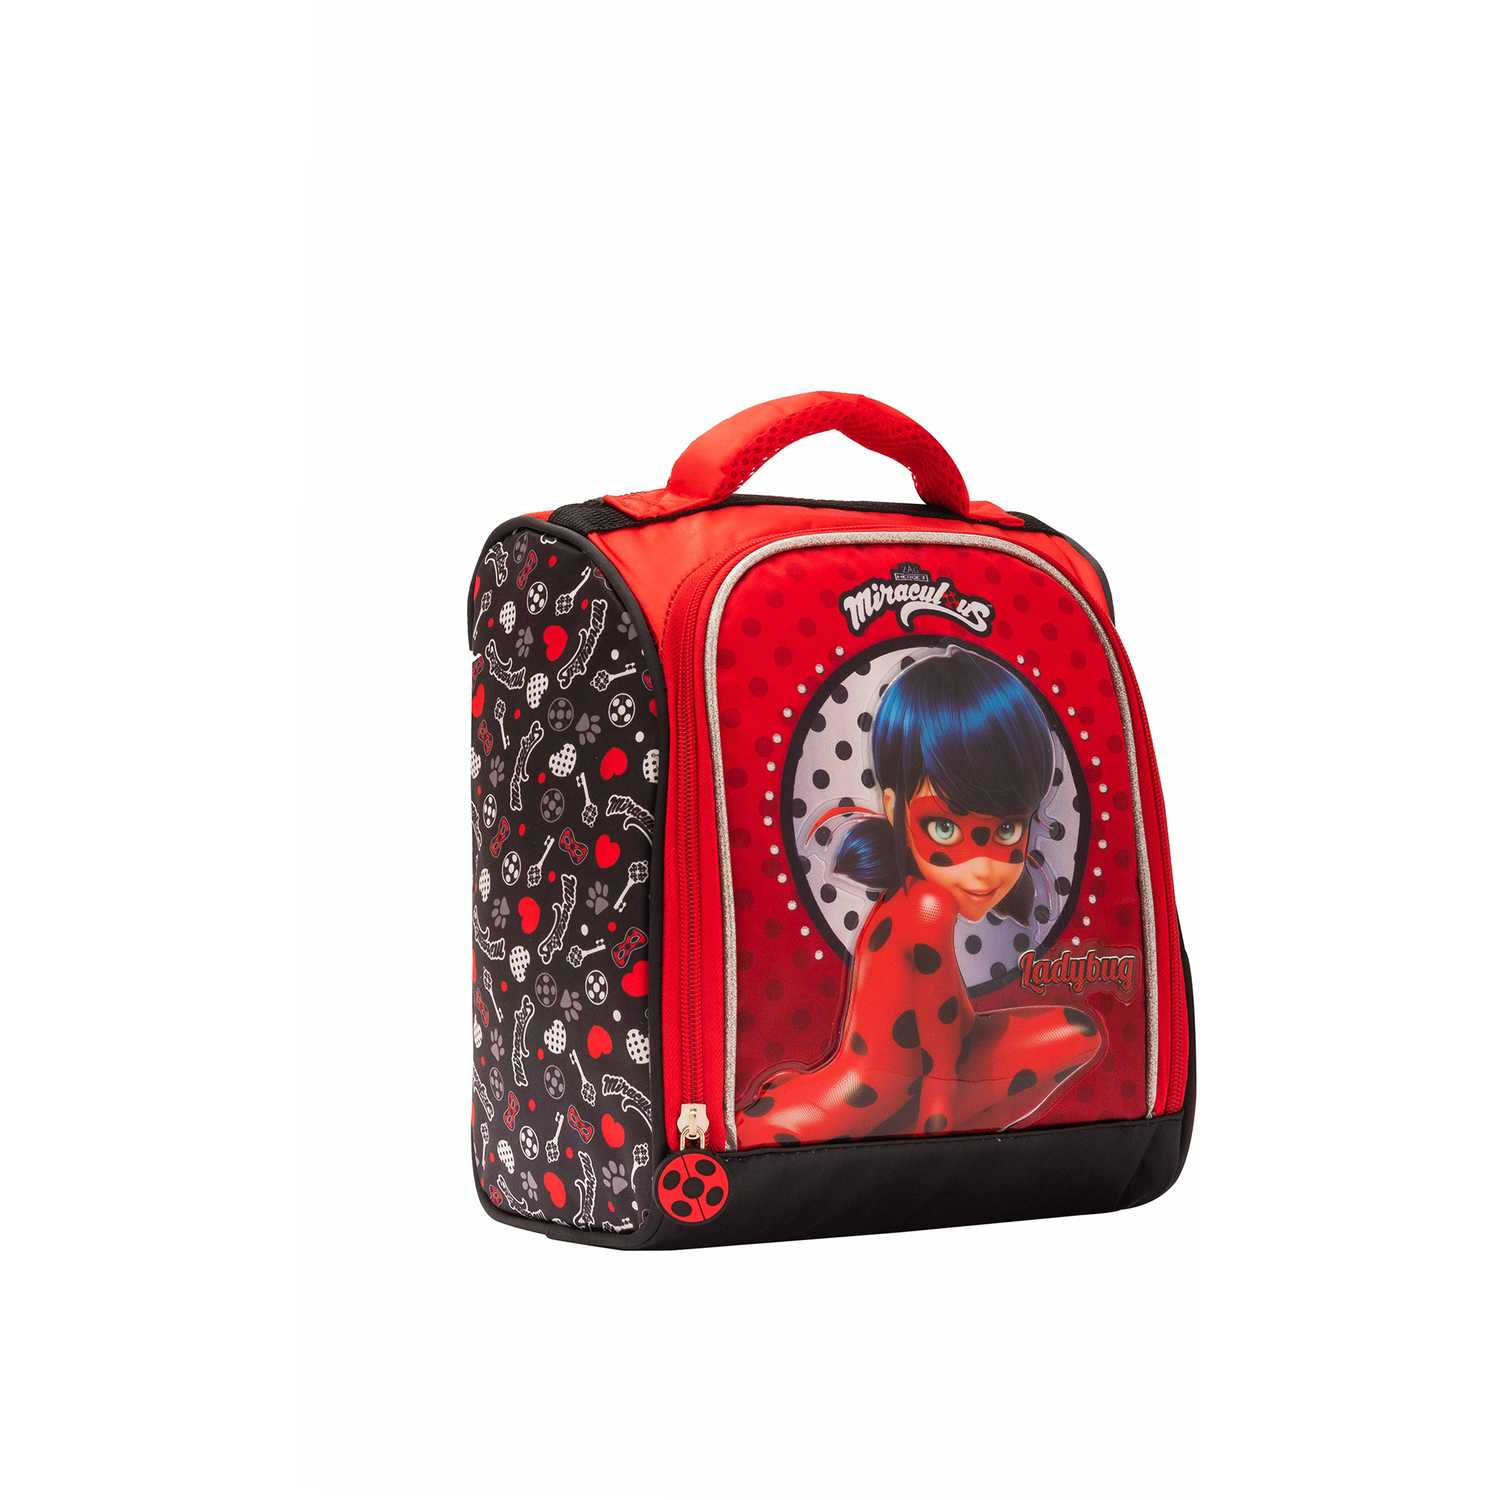 Lonchera de Niña Scool Rojo 9 scool lady bug lonch tela c/pvc bolso